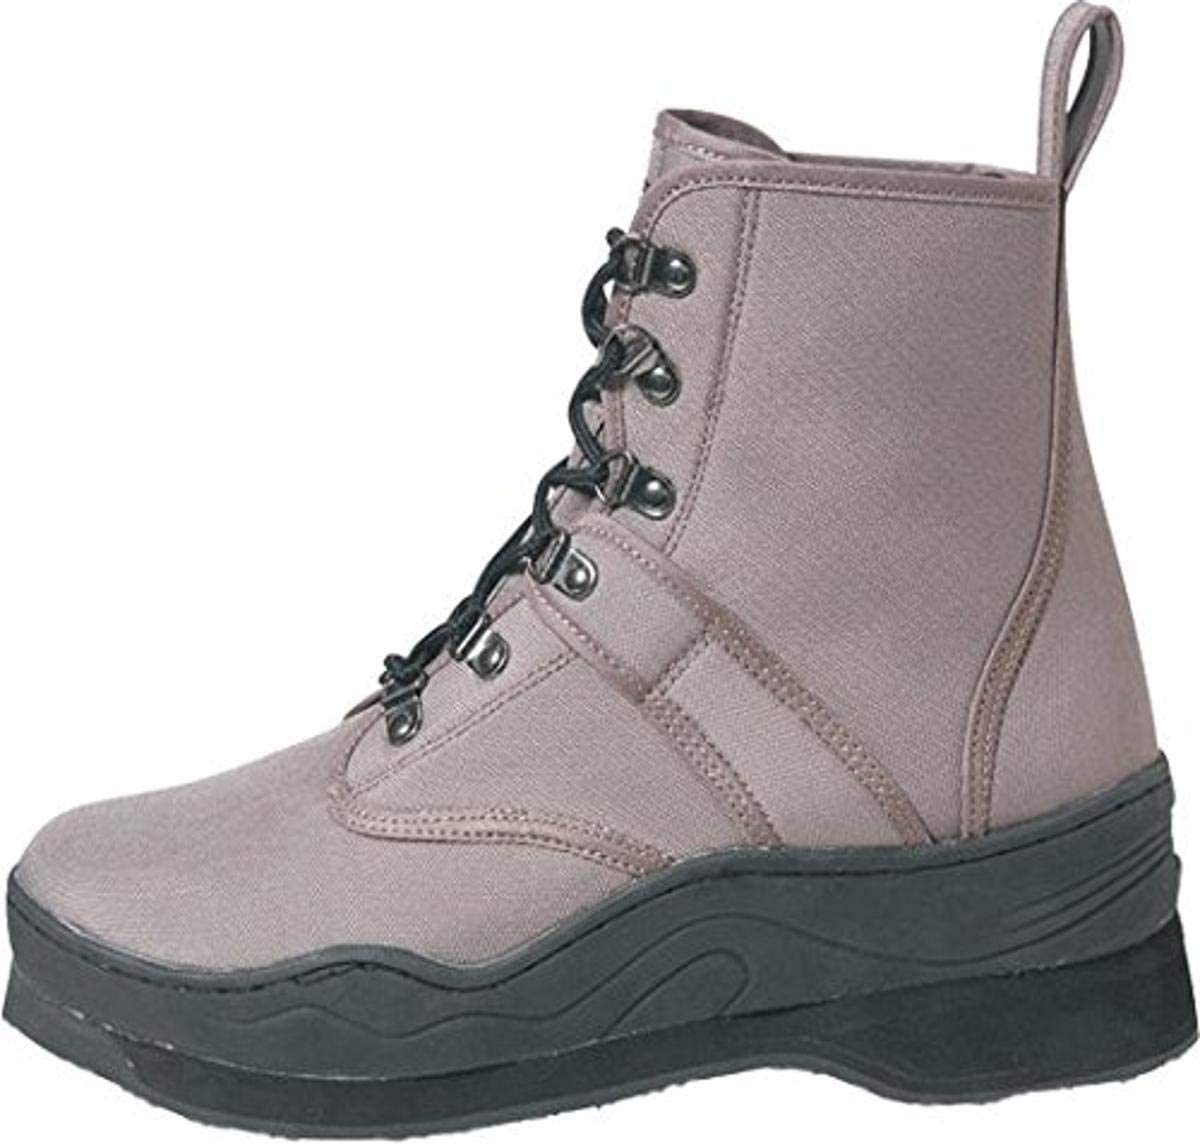 Caddis Felt Sole Wading Boots - Best Wading Boots For Hiking under budget